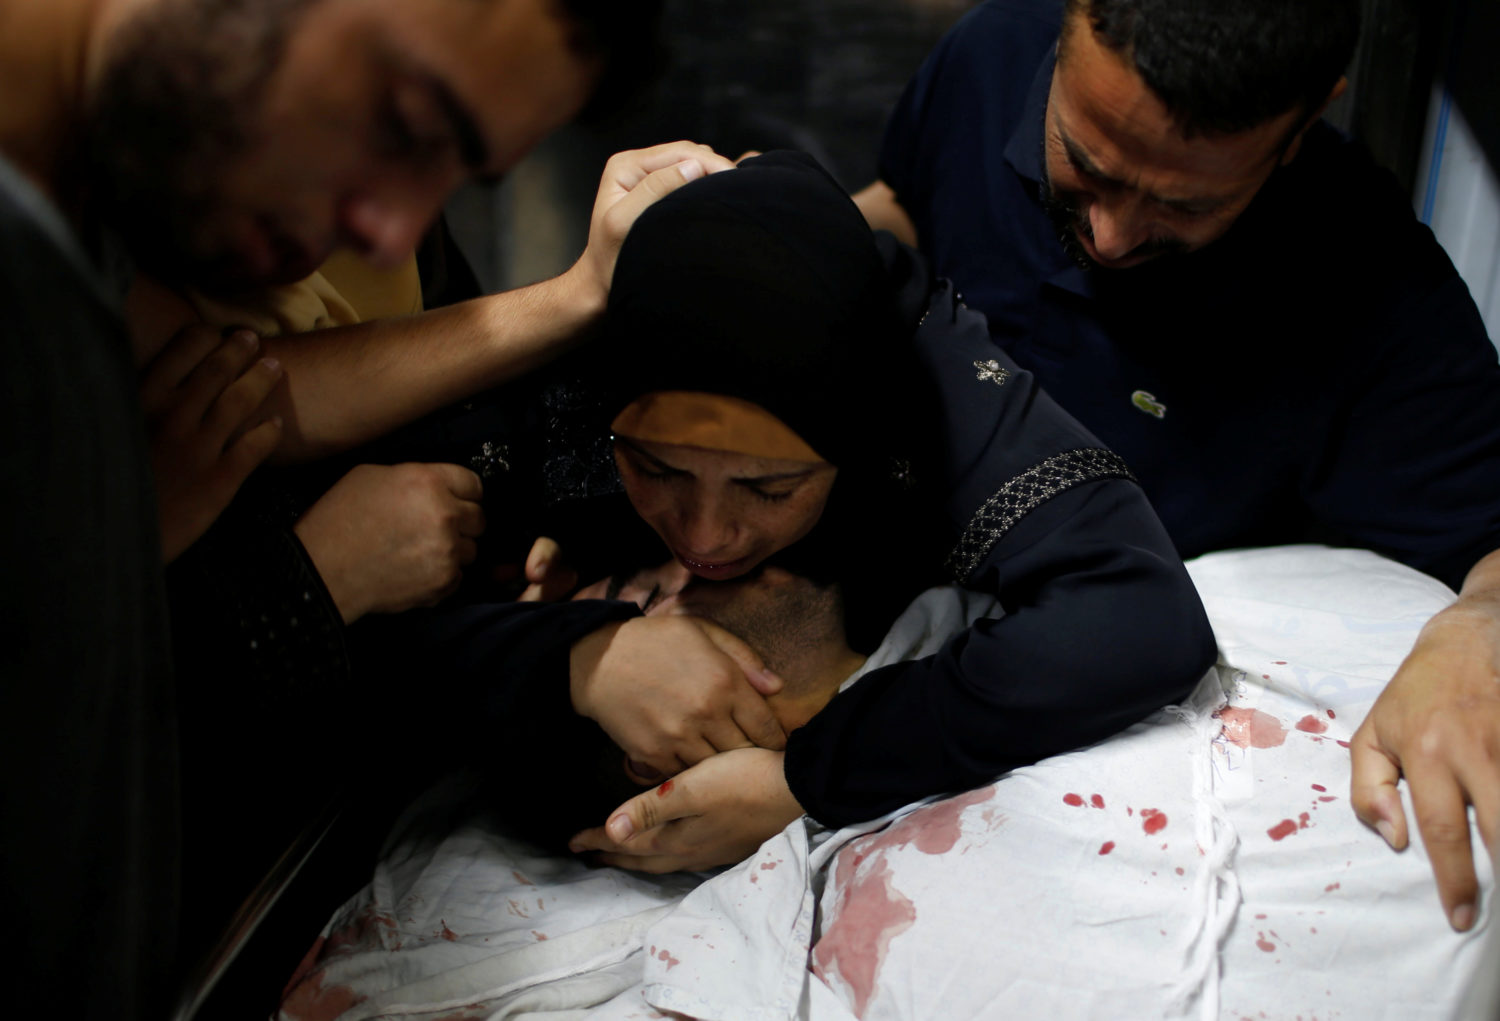 The mother of a Palestinian, who was killed at the Israel-Gaza border during a protest, reacts over his body in Gaza city July 6, 2018. REUTERS/Mohammed Salem